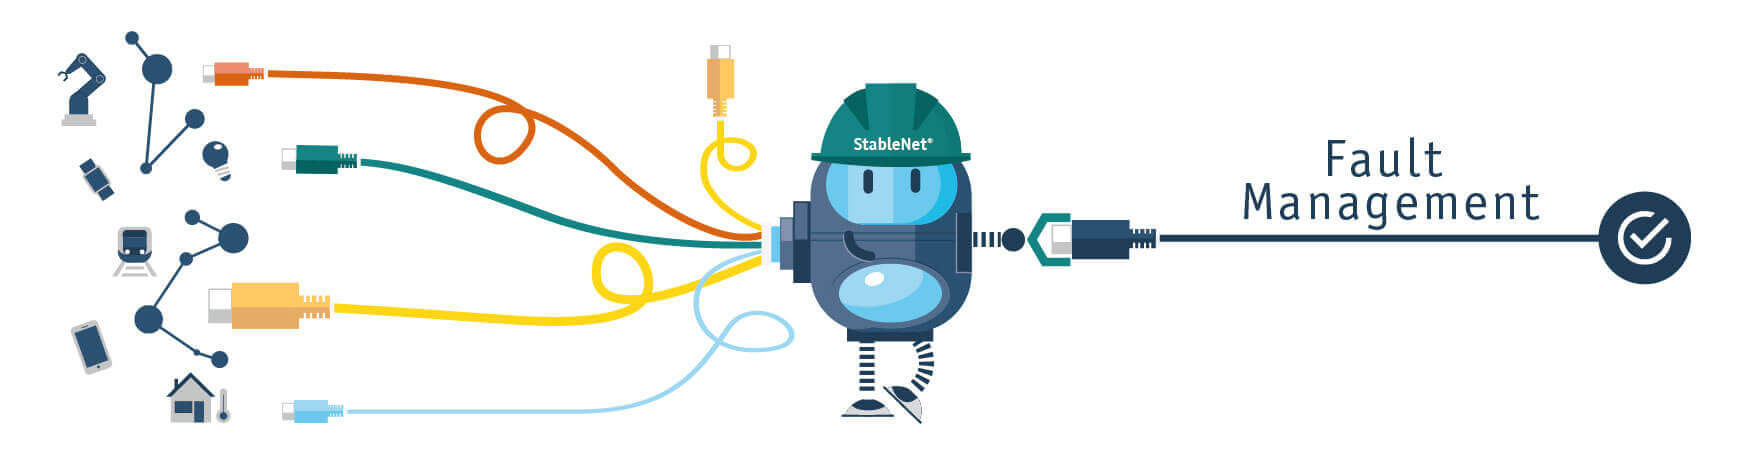 Network Fault Management with StableNet